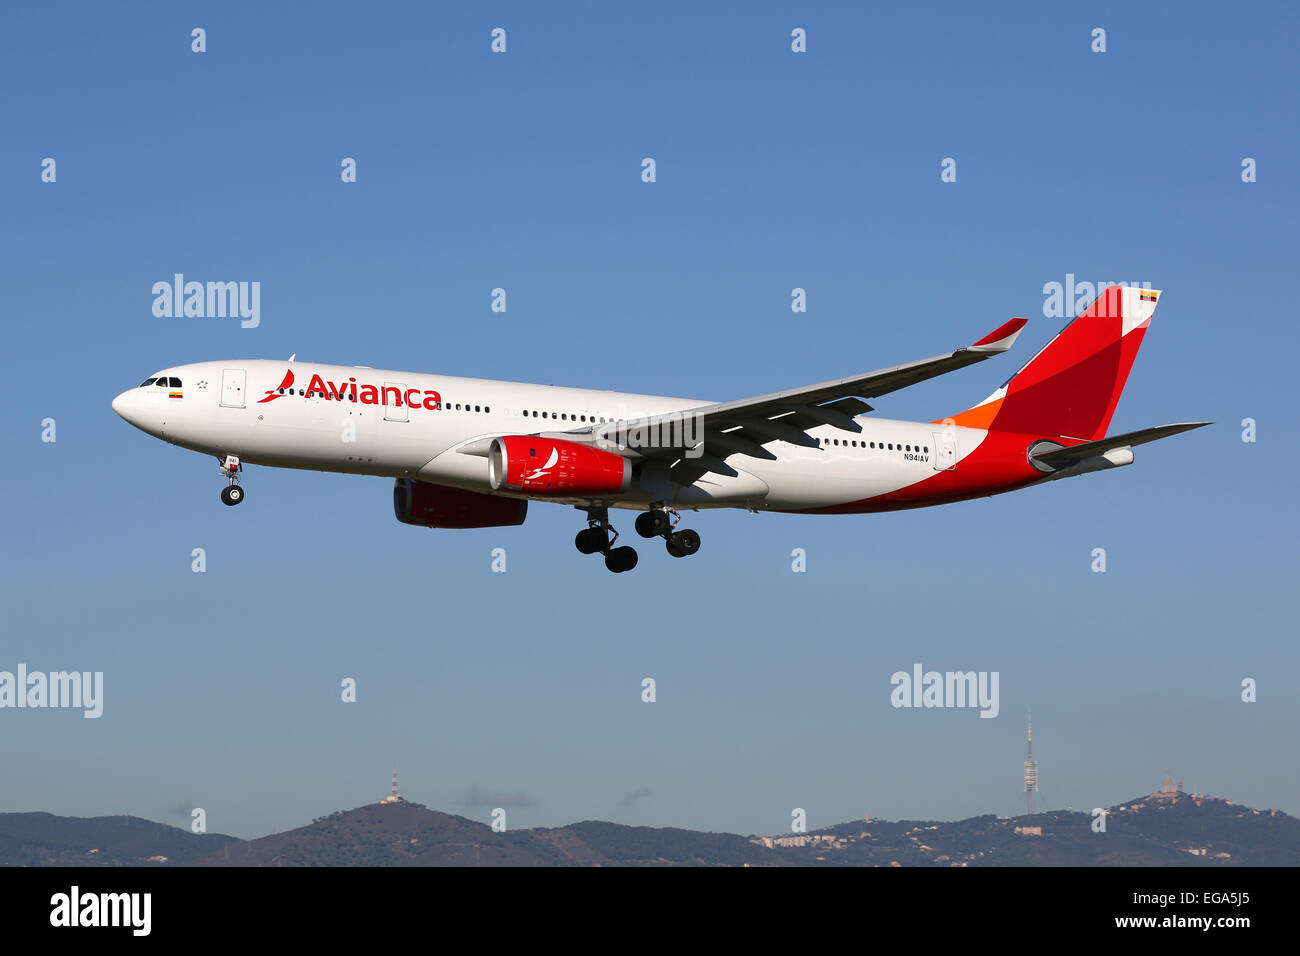 Barcelona, Spain - December 11, 2014: An Avianca Airbus A330-200 with the registration N941AV approaching Barcelona - Stock Image